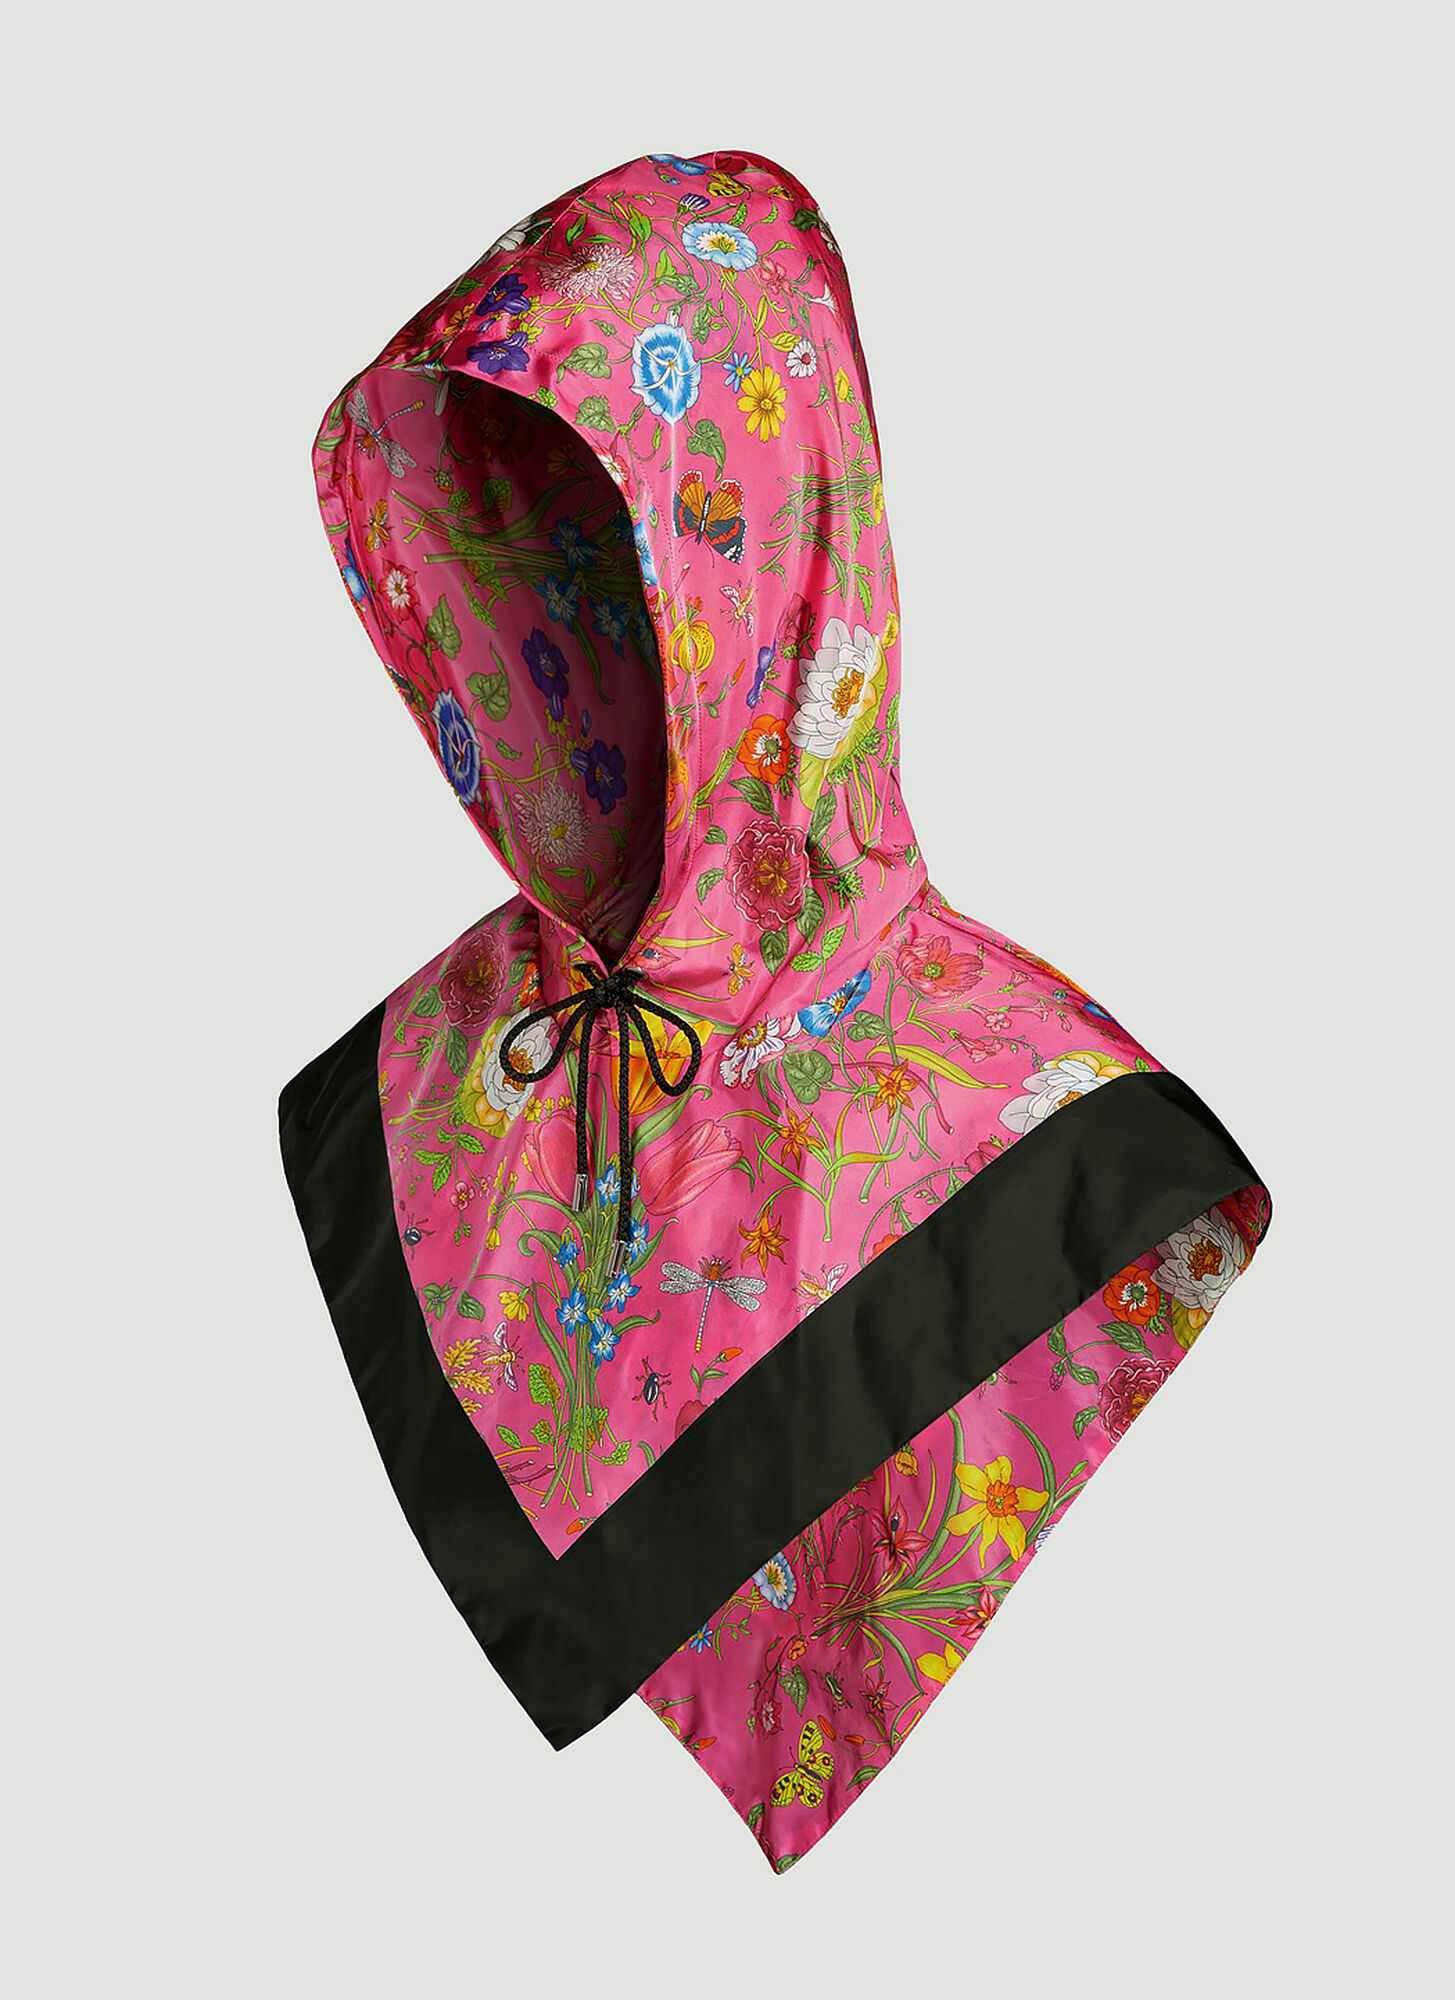 Gucci Floral Print Hood in Pink